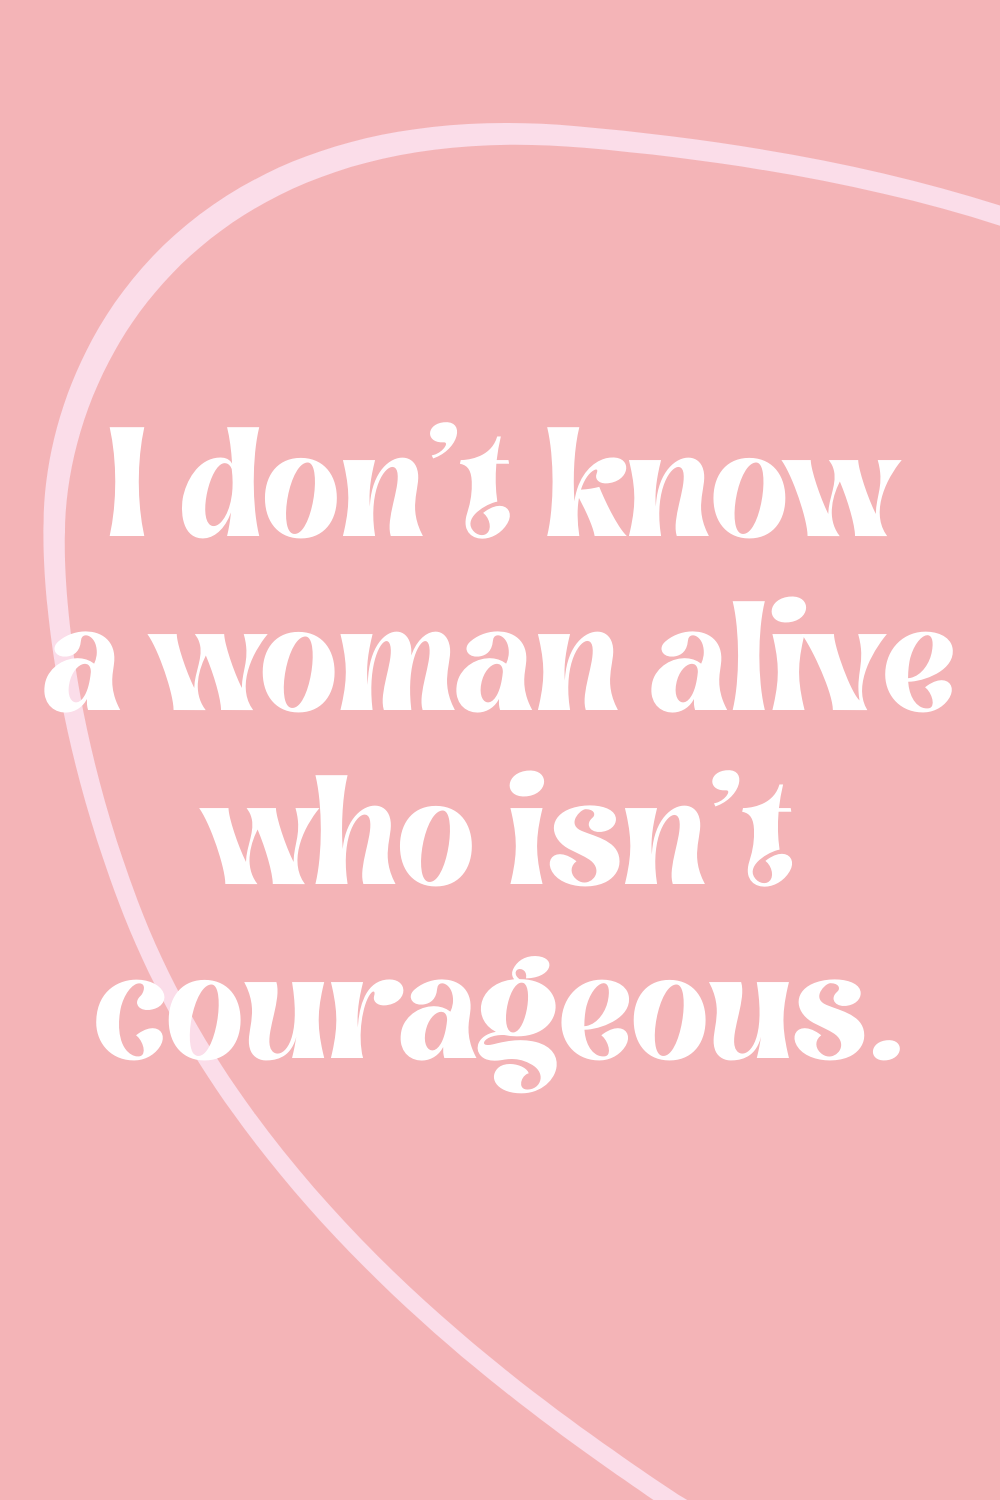 Courage quote idea for women